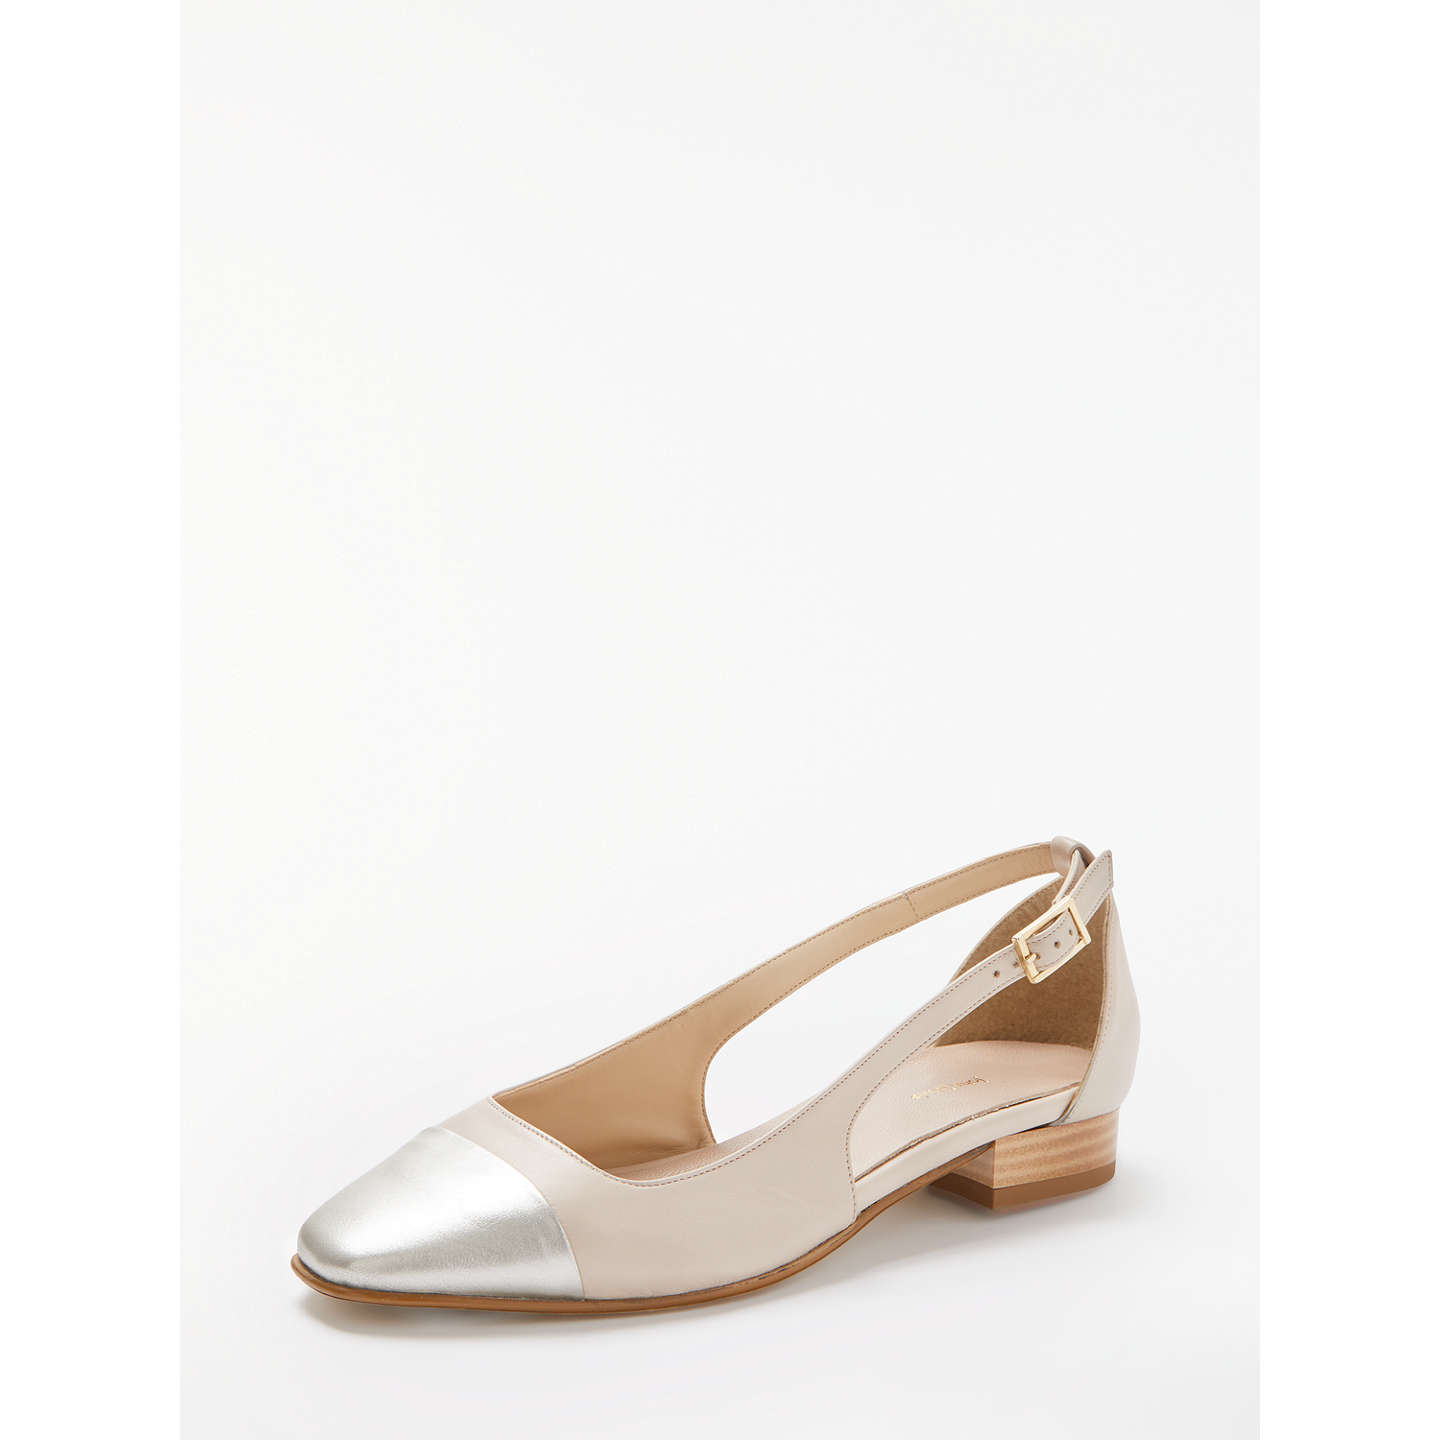 John Lewis Camilla Open Side Flat Toe Cap Court Shoes, Nude